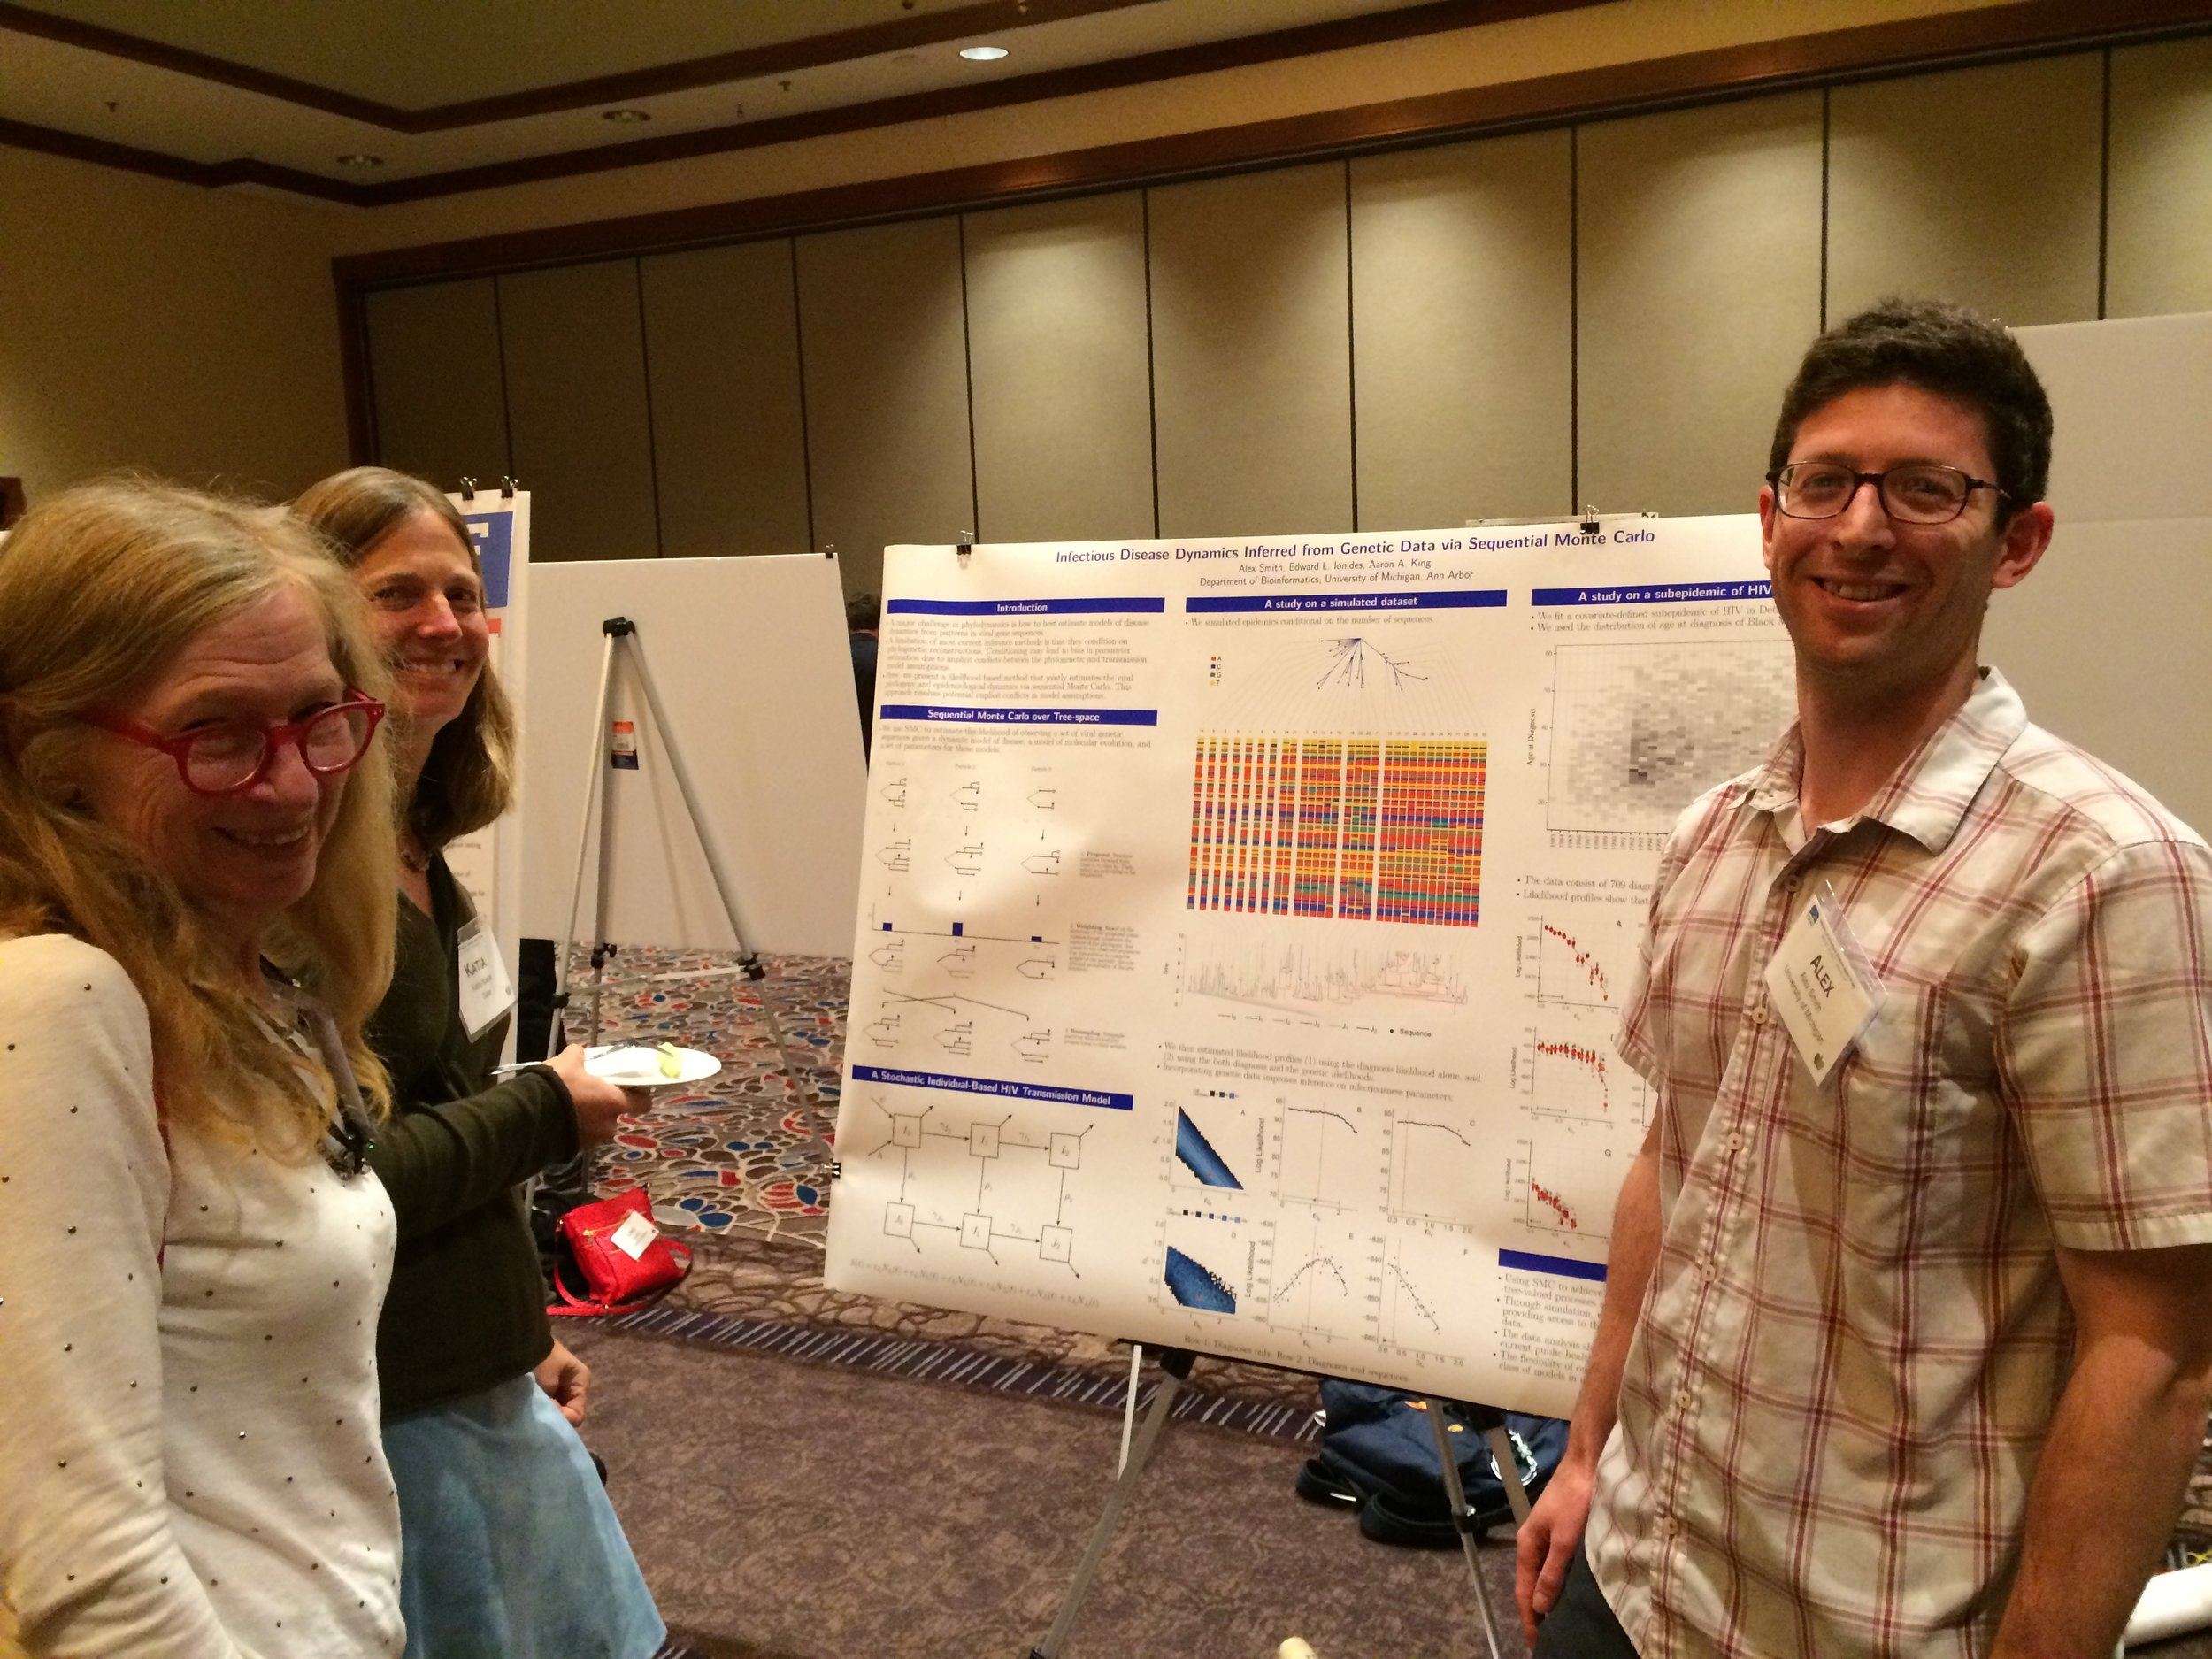 Alex Smith discussing his poster with Betz Halloran and Katia Koelle.